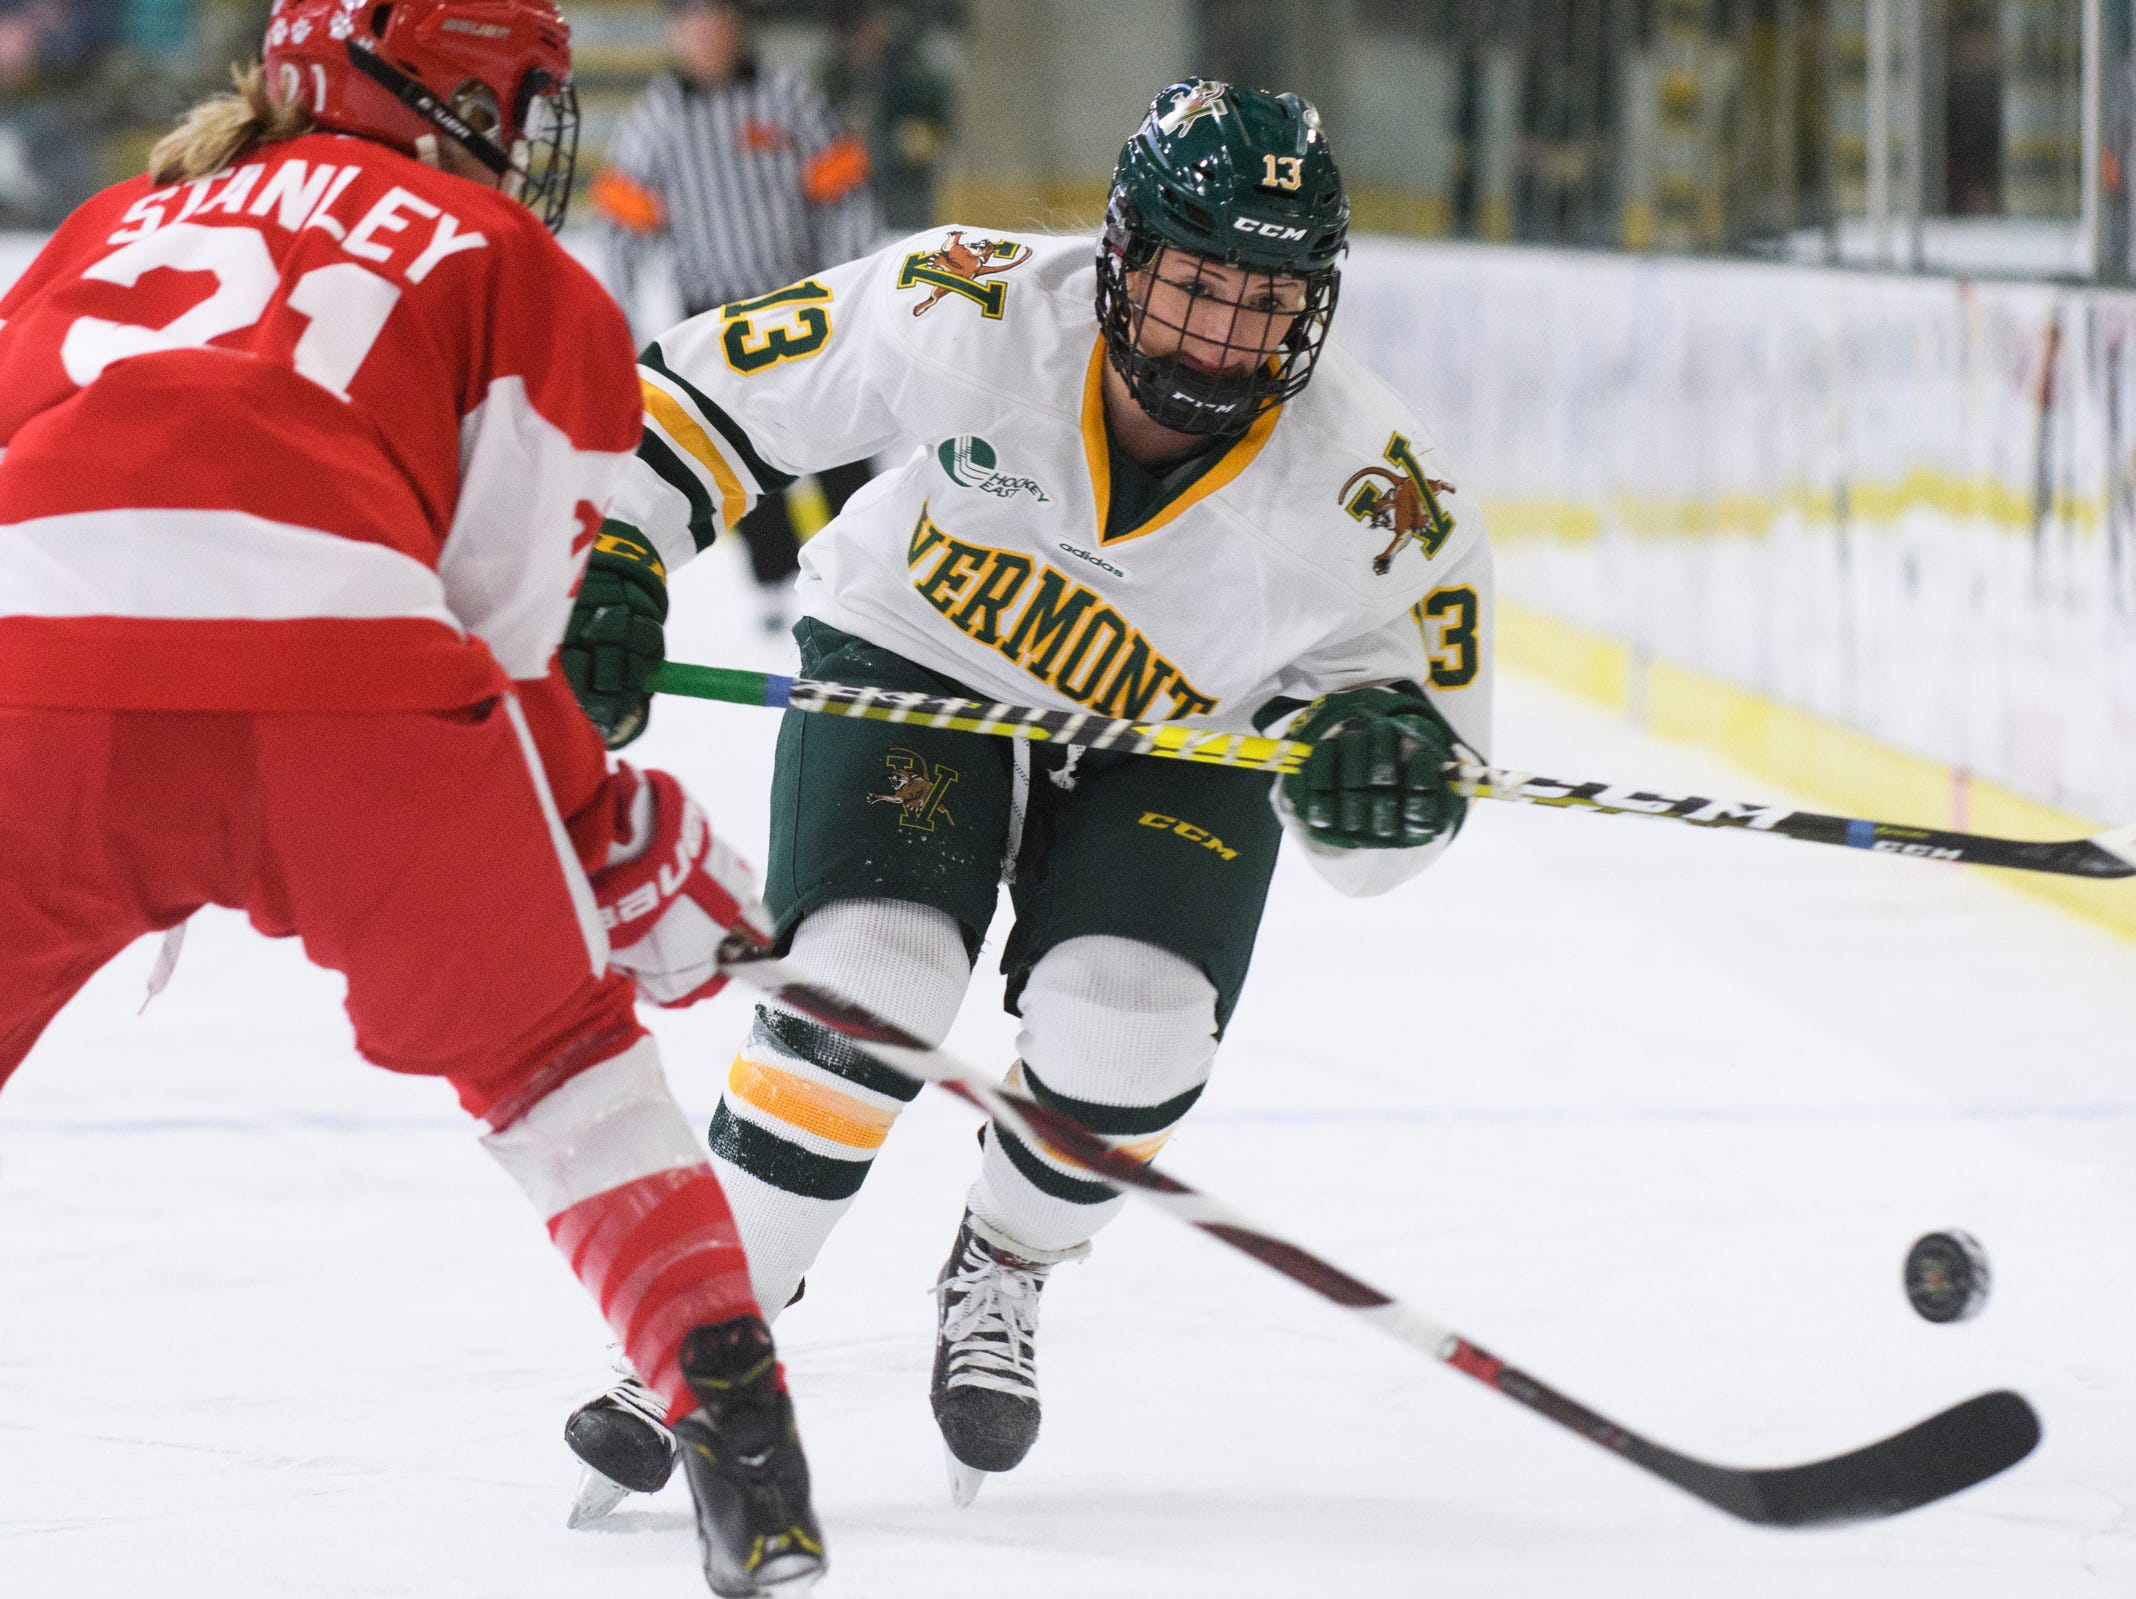 Vermont's Lilly Holmes (13) plays the puck during the women's hockey game between the Boston Terriers and the Vermont Catamounts at Gutterson Field House on Friday night February 1, 2019 in Burlington, Vermont.